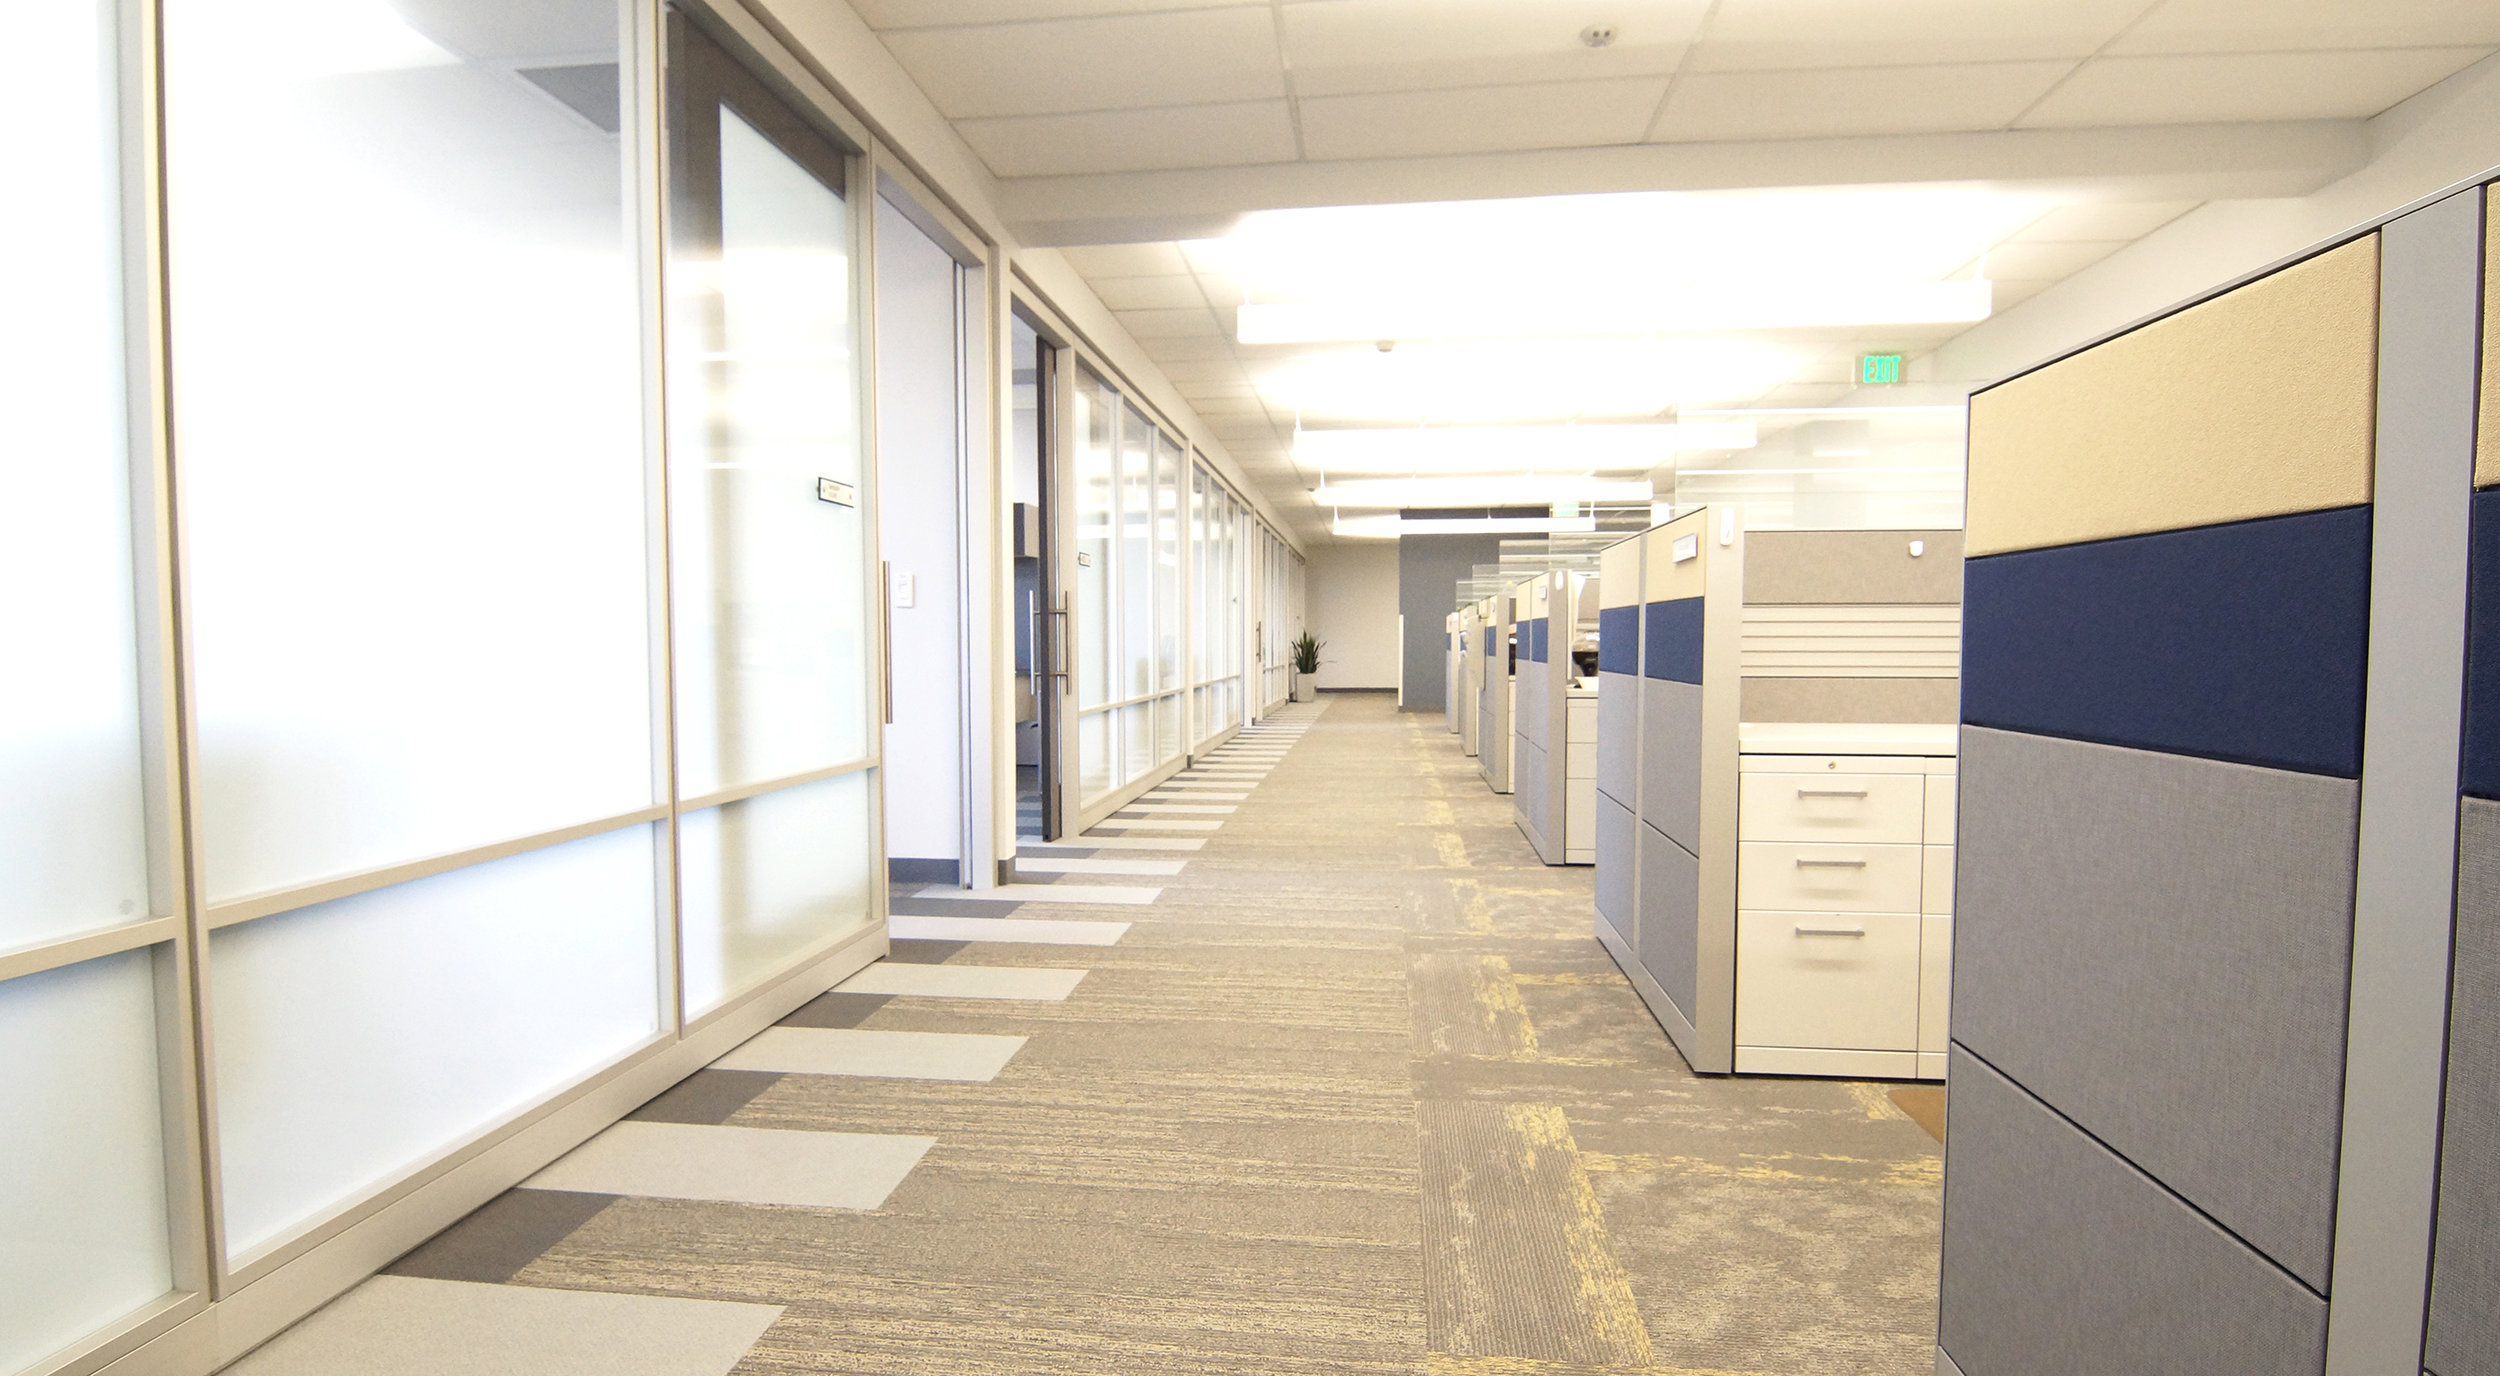 """Throughout the space, offices with glass fronts line the exterior of the floors, allowing natural light to filter into the open office interior where the workstations are installed. The carpet pattern is comprised of the three styles of  Mohawk's Iconic Earth  collection along with accents of blue installed in a """"zipper"""" pattern underneath the architectural wall system, weaving in and out of the private offices."""